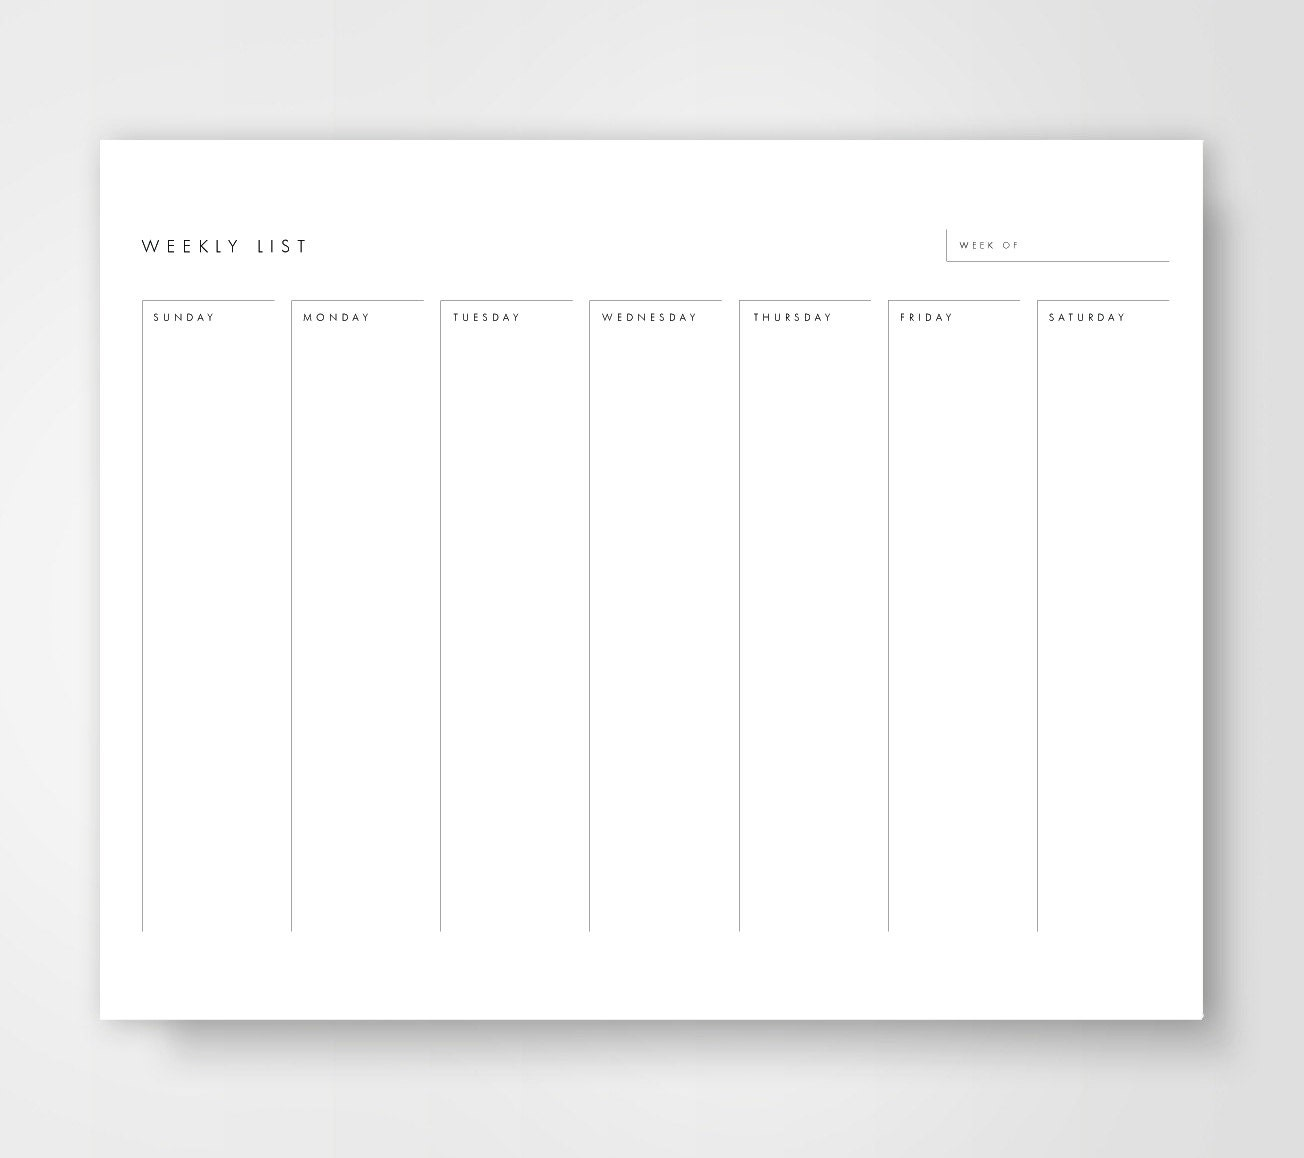 Weekly Calendar With To Do List : Weekly calendar printable to do list